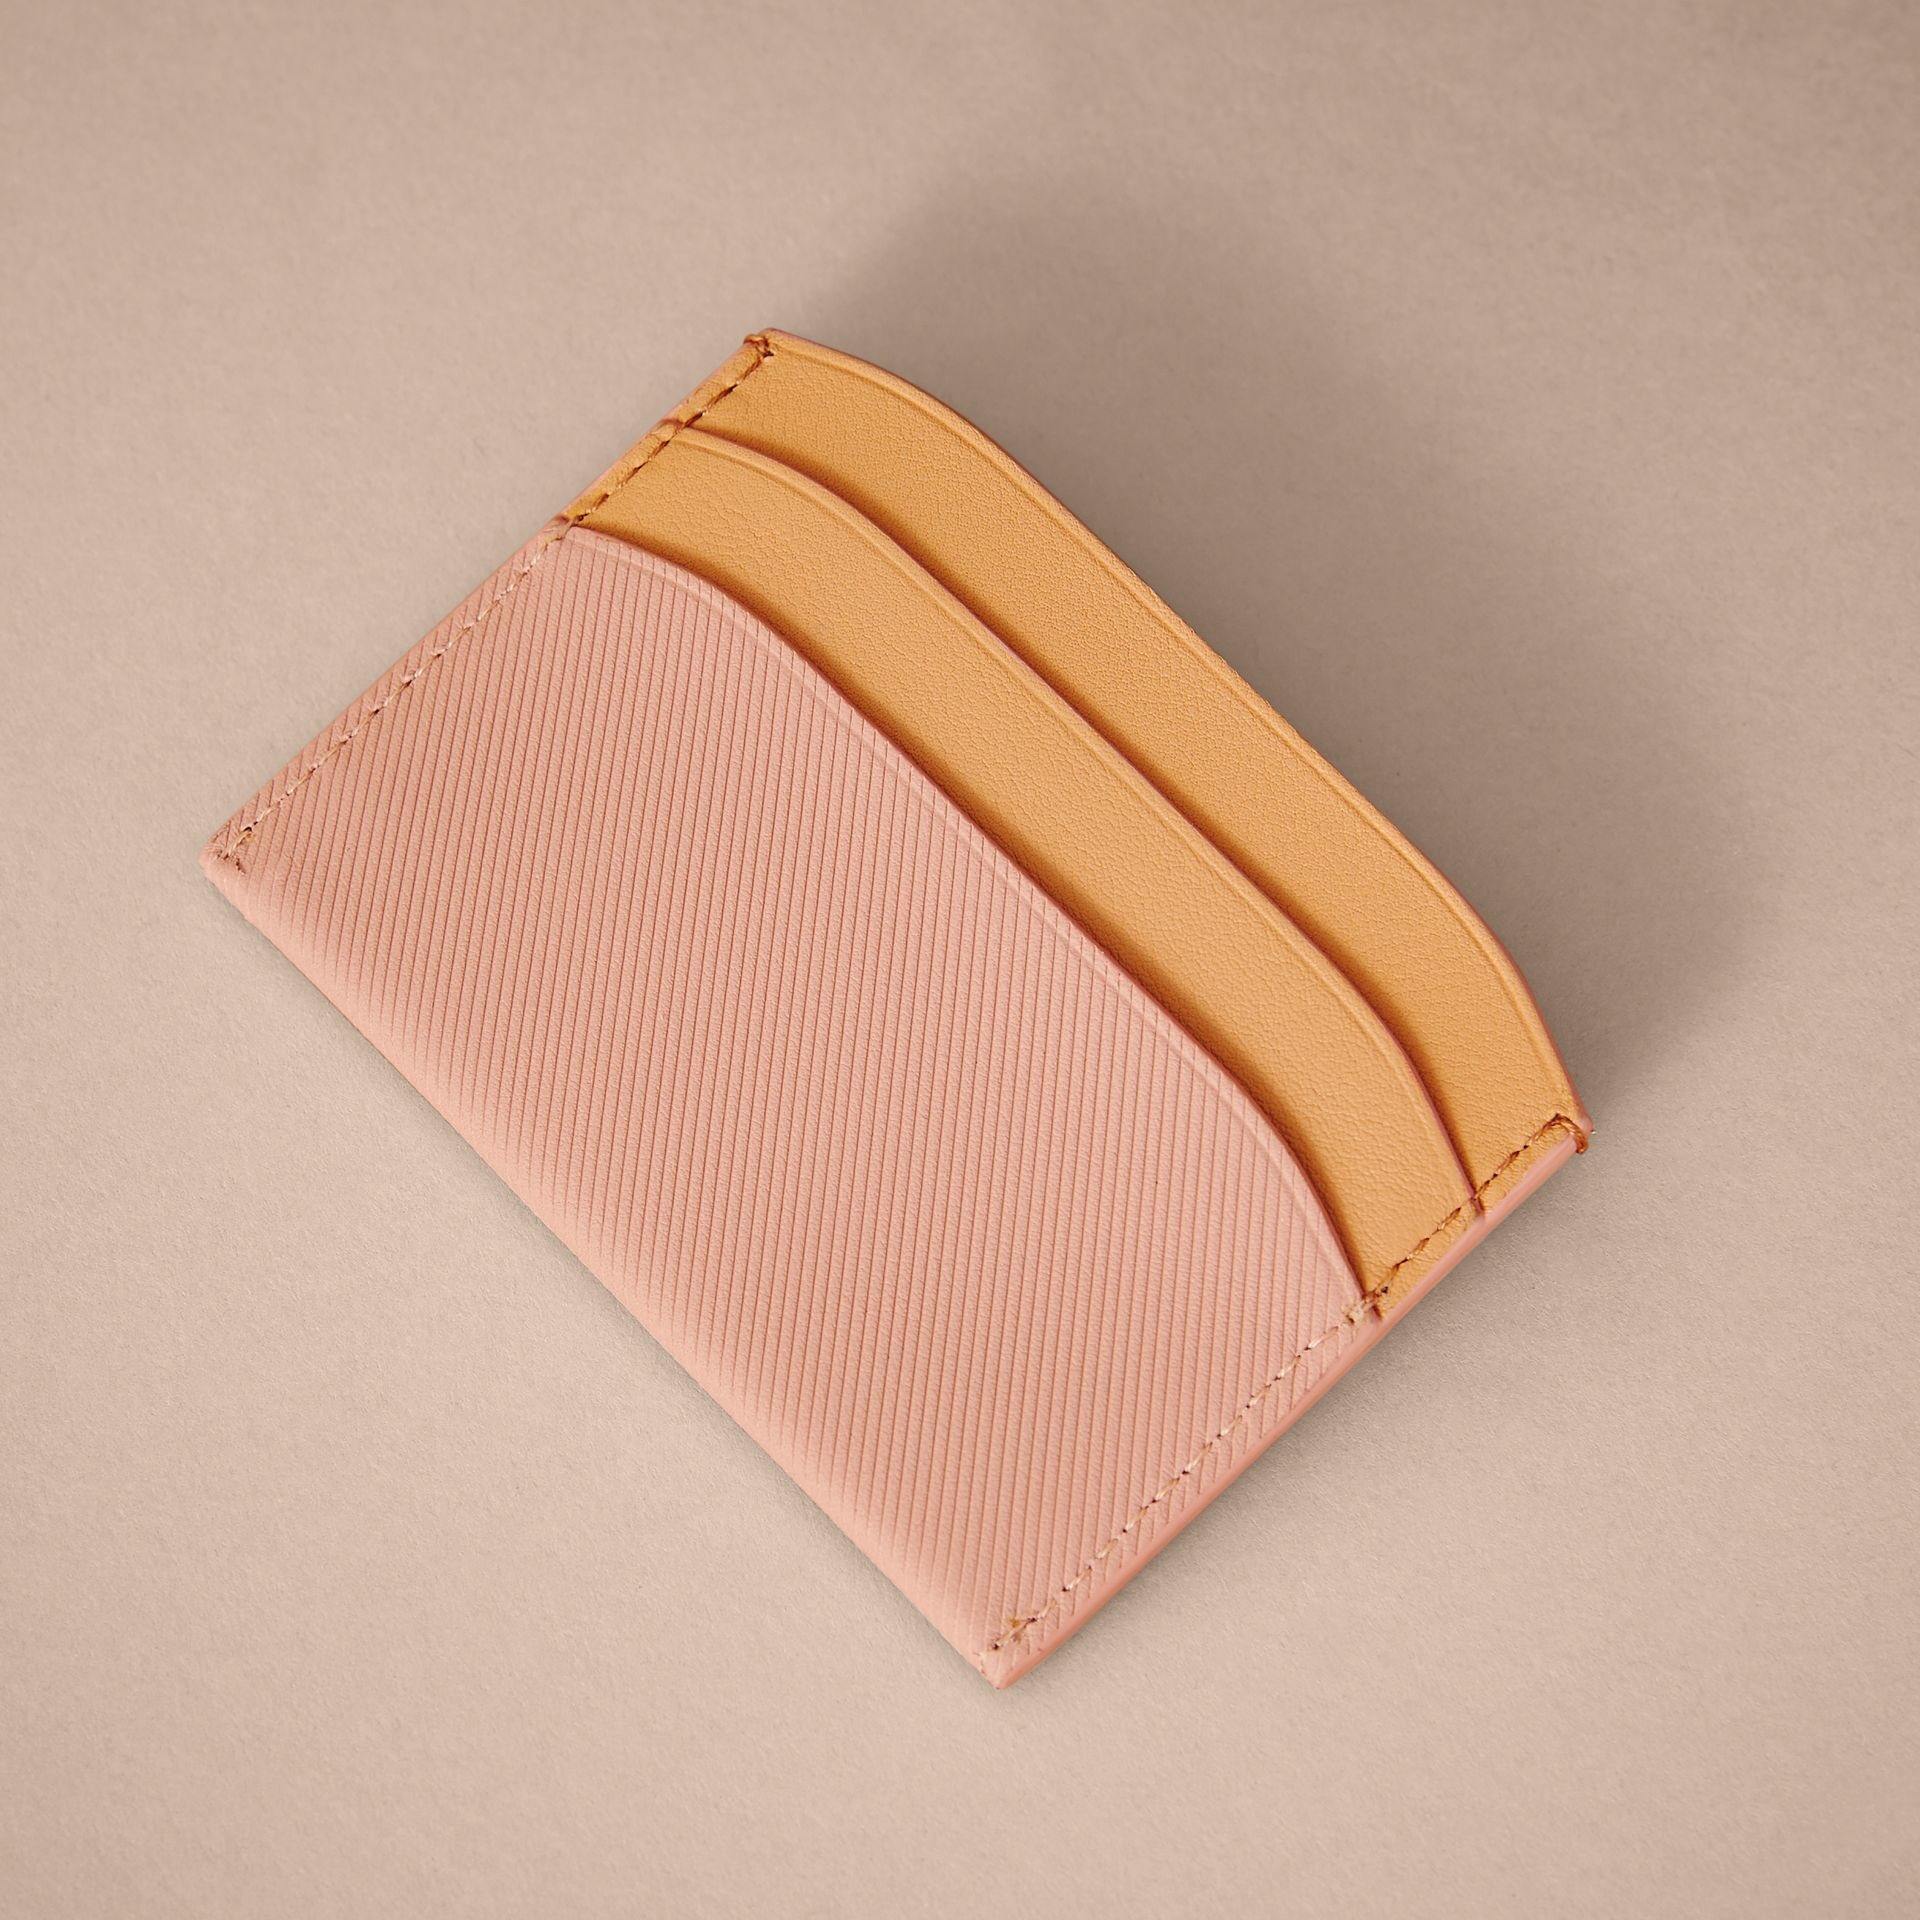 Two-tone Trench Leather Card Case in Ash Rose/pl Clemn - Women | Burberry United Kingdom - gallery image 2